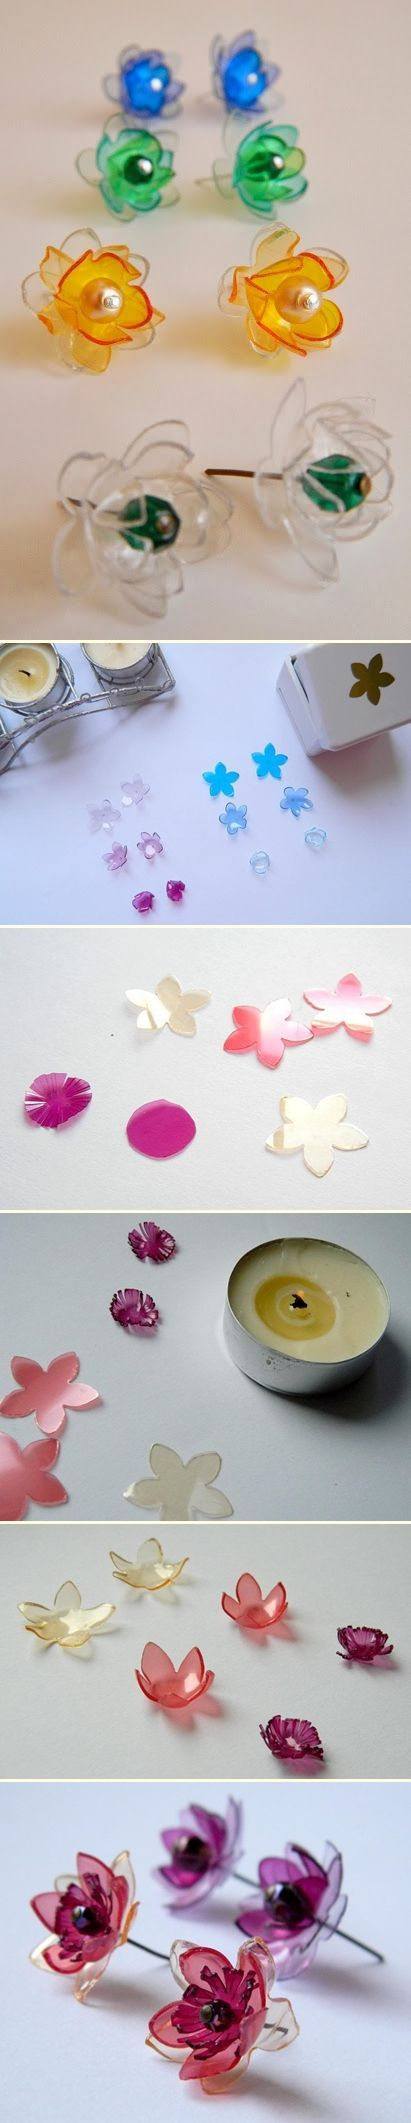 DIY Flower Earrings from Plastic Bottles